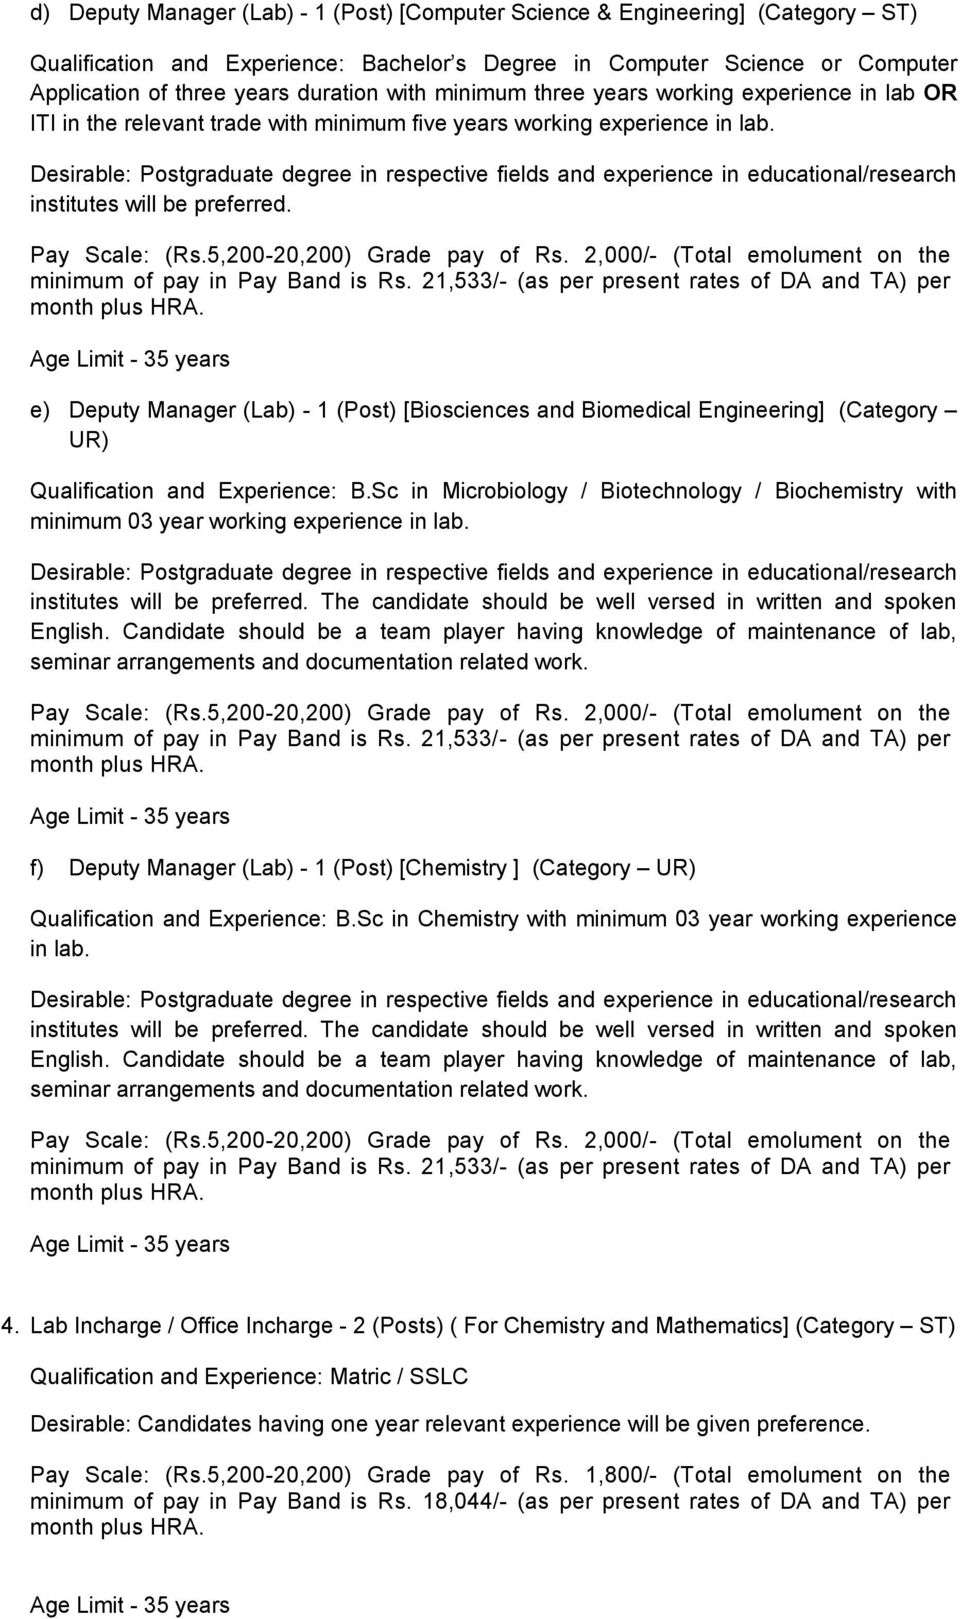 e) Deputy Manager (Lab) - 1 (Post) [Biosciences and Biomedical Engineering] (Category UR) Qualification and Experience: B.